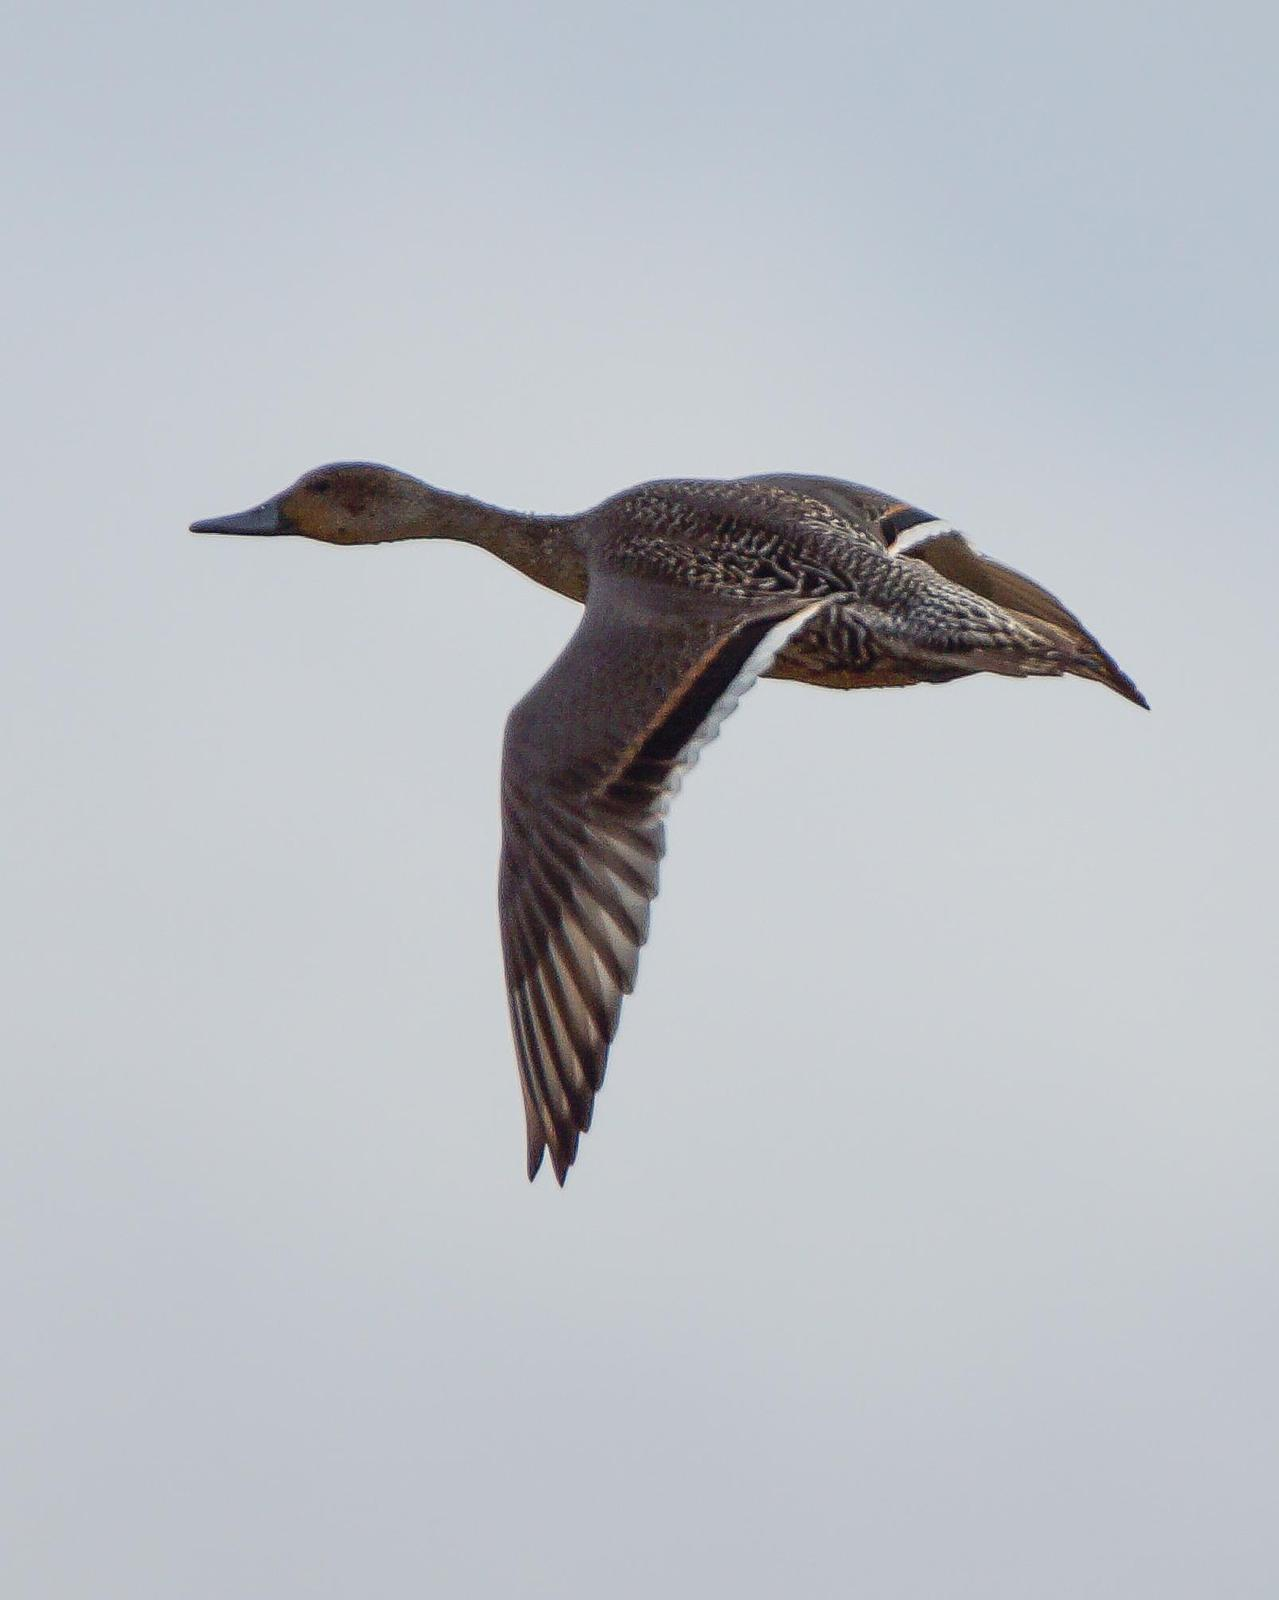 Northern Pintail Photo by Steve Percival